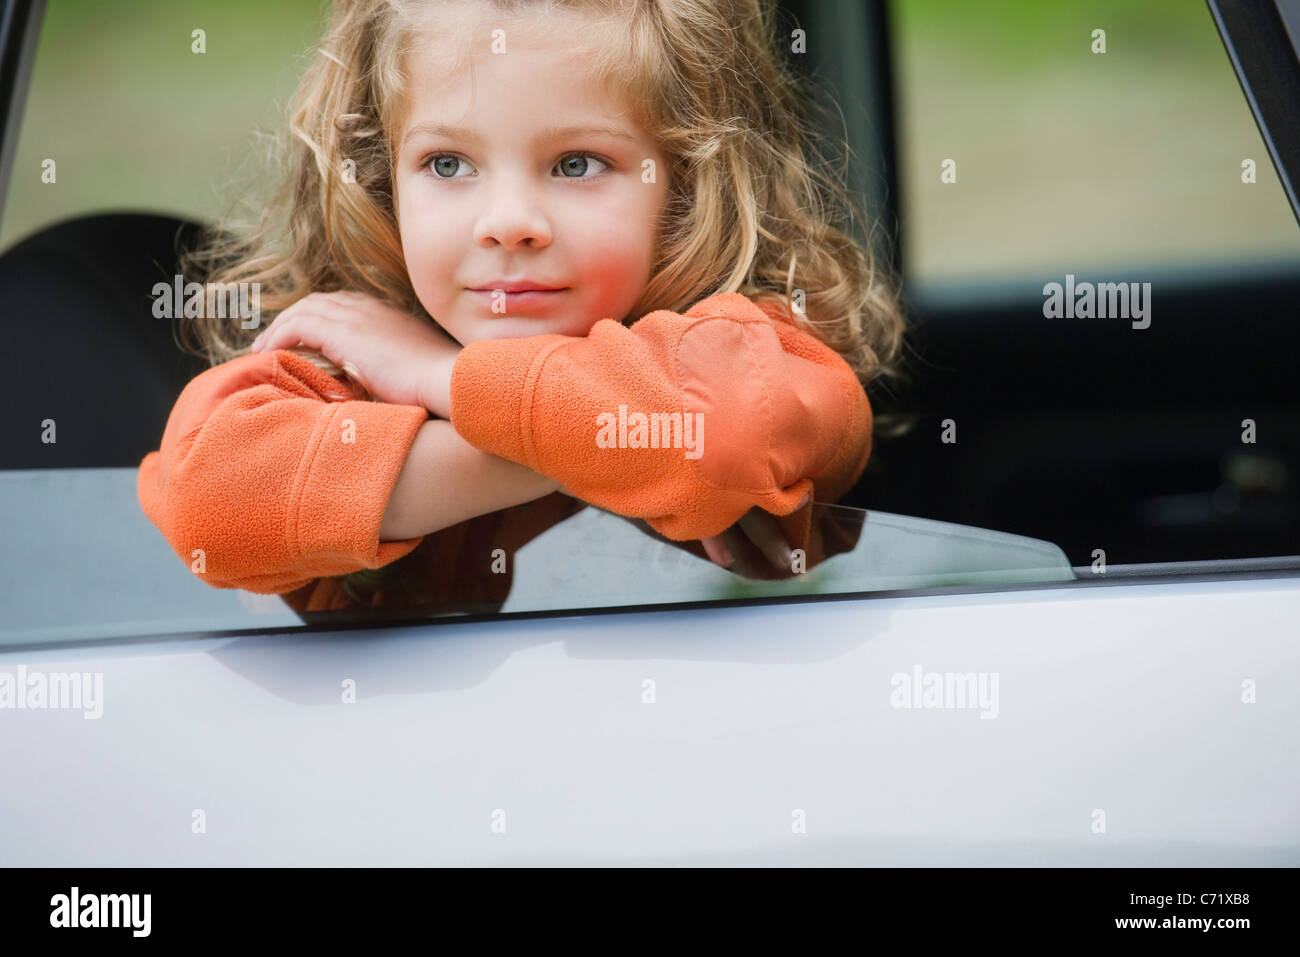 Little girl looking out car window, portrait - Stock Image